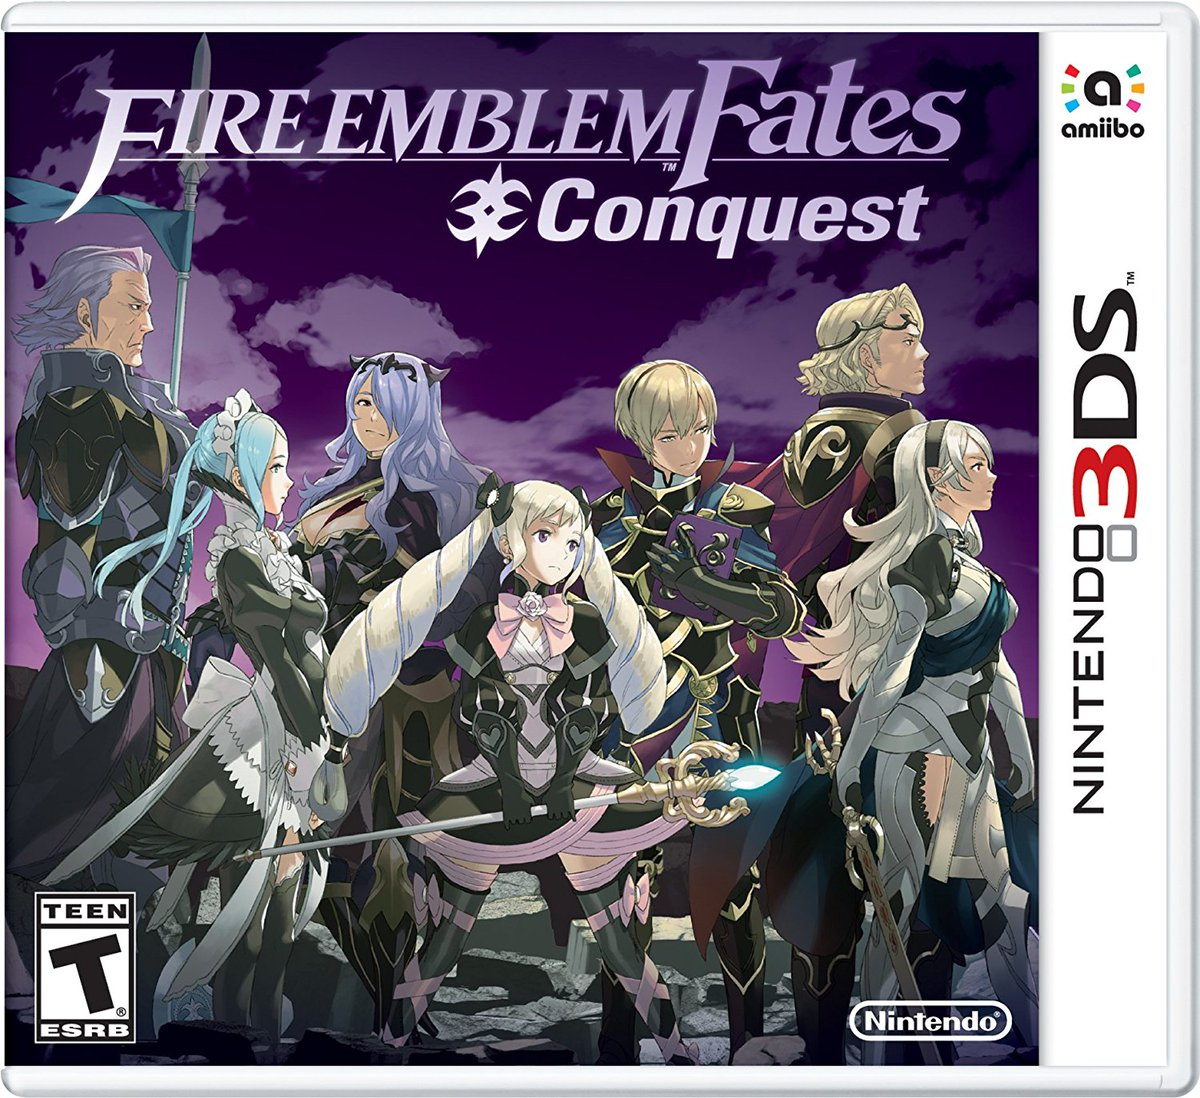 Ready for a challenge? Fire Emblem Fates: Conquest (#3DS) is on sale for $22.53. May RNG be in your favor! #FE  http:// amzn.to/2vg8JoM  &nbsp;  <br>http://pic.twitter.com/ZLc8ucxgJr